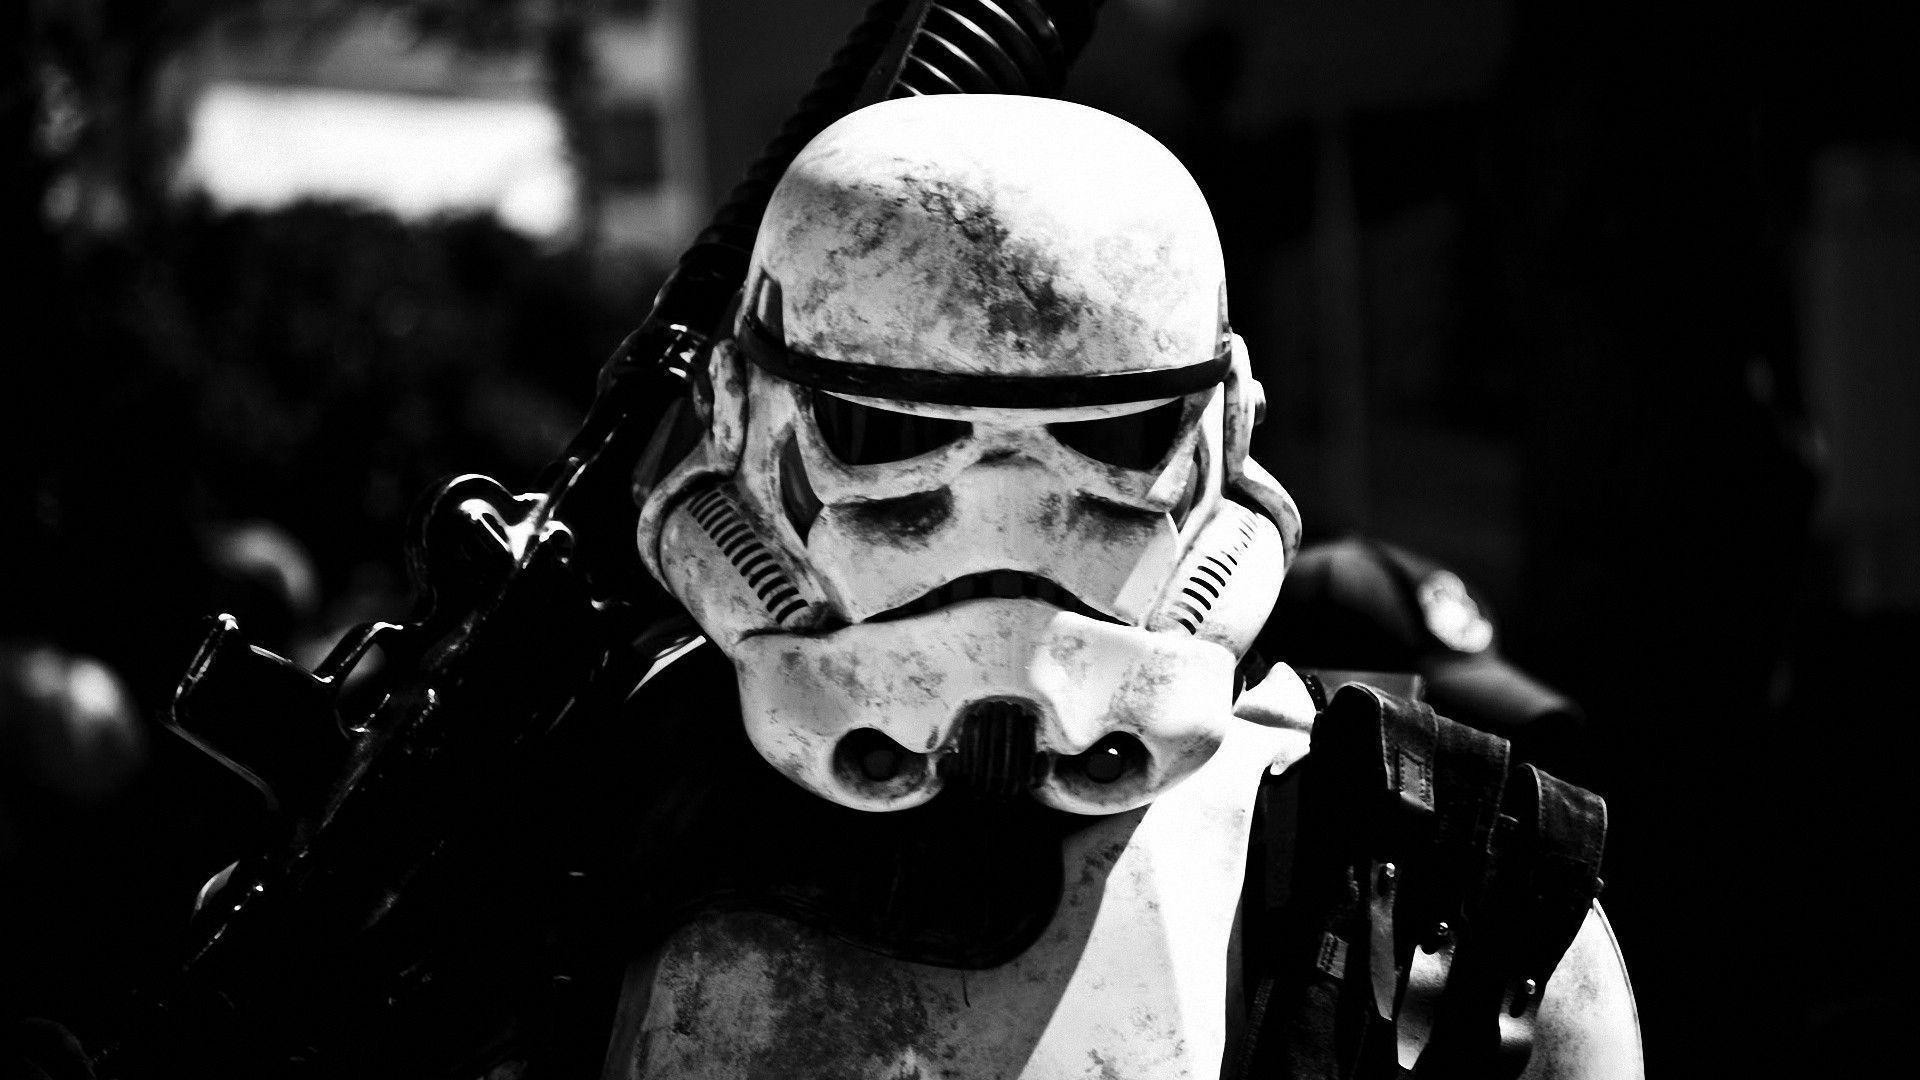 1920x1080 Star wars stormtrooper Wallpapers | Pictures